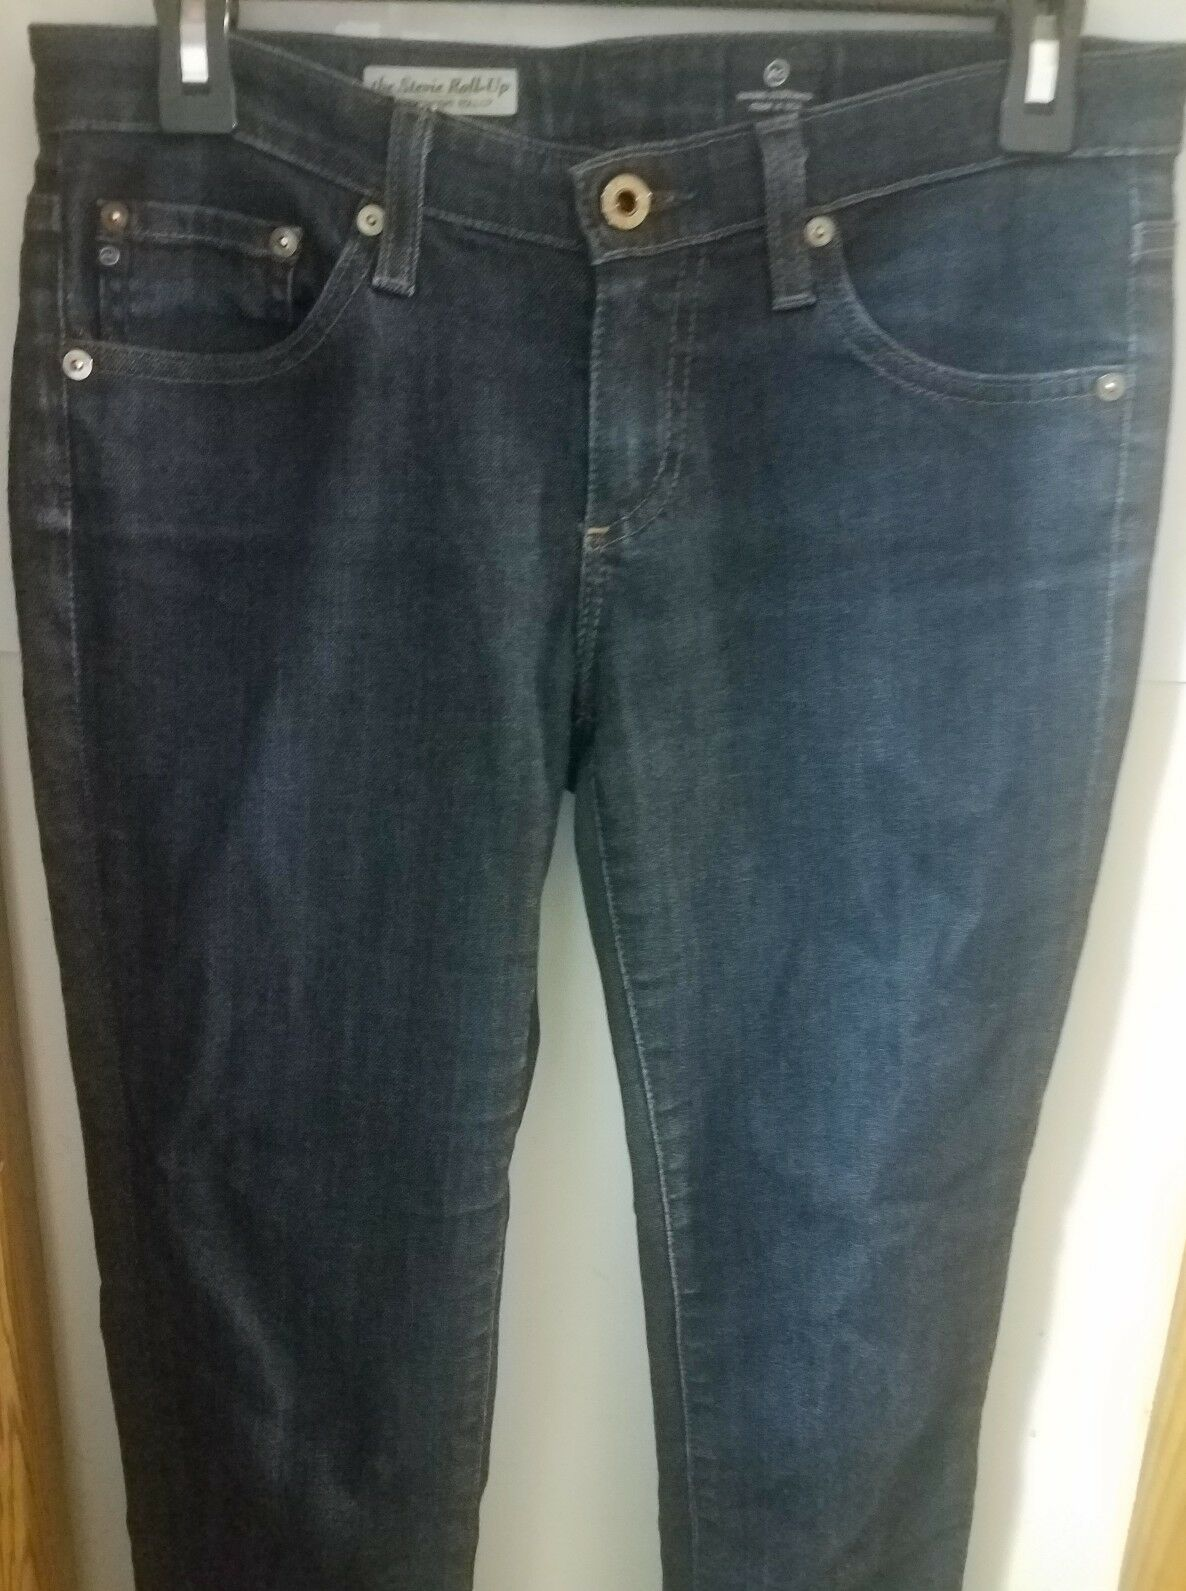 198 AG Dark bluee  The Stevie Roll Up  Slim Straight Leg Jeans sz 27Rx24